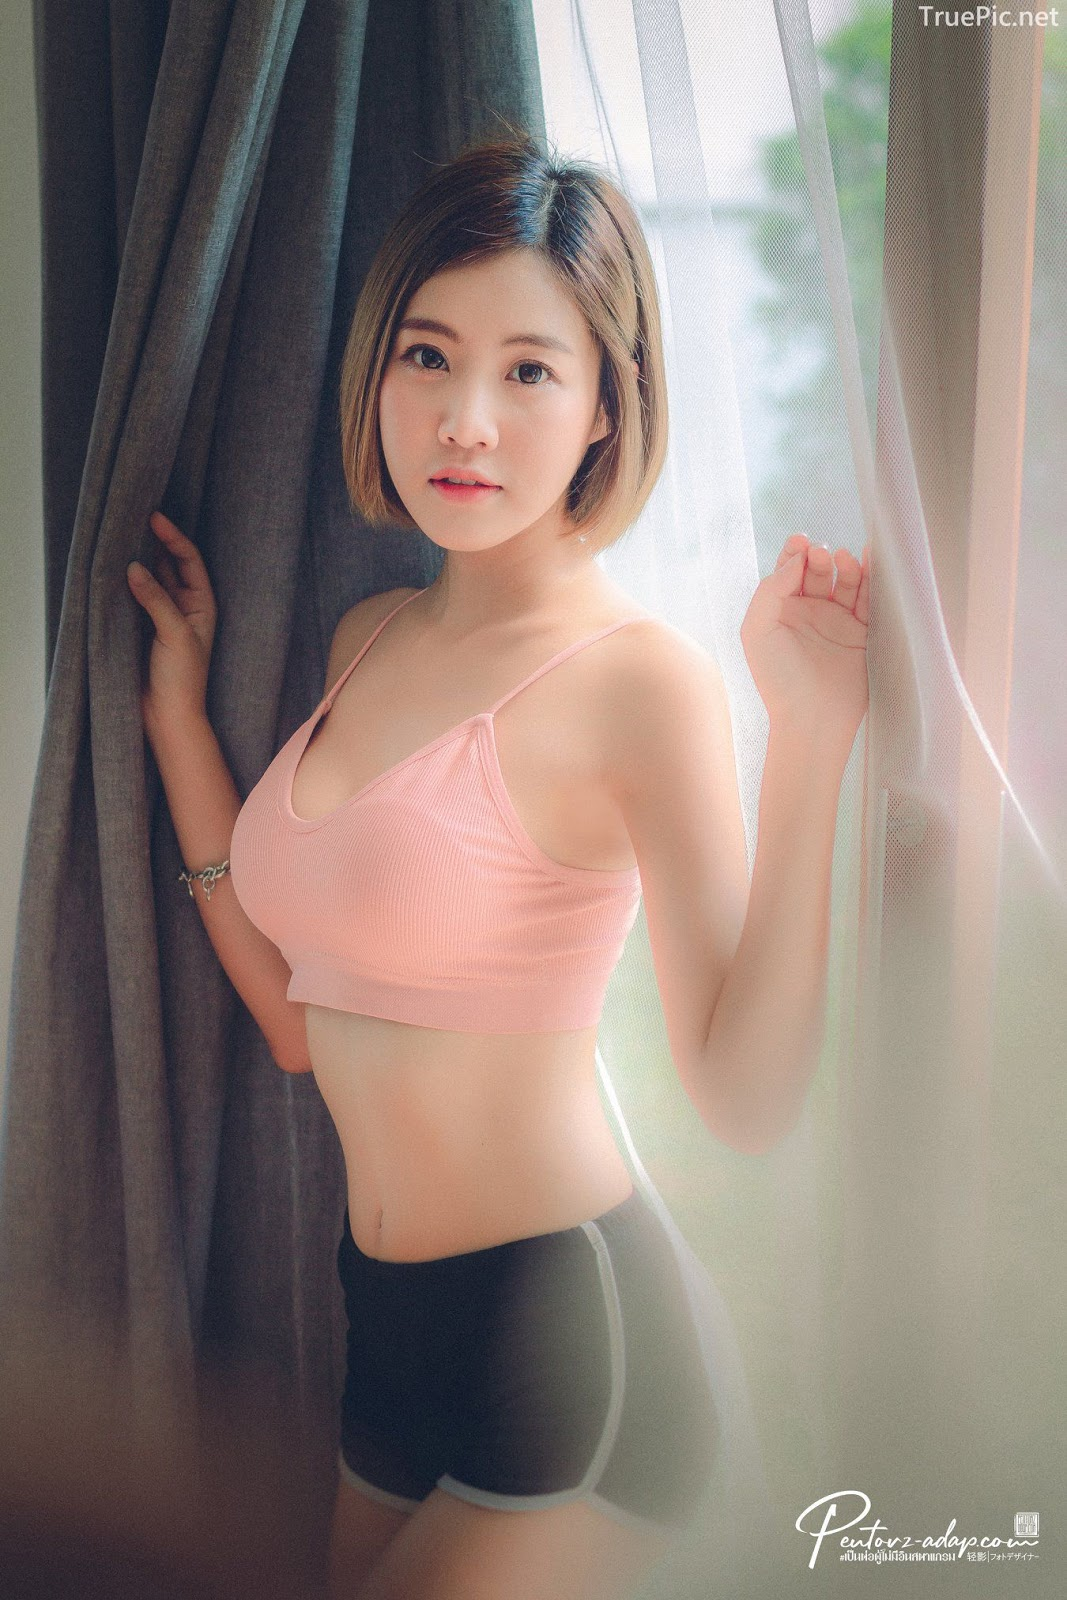 Thailand Cute Model - Fah Chatchaya Suthisuwan - Pink Lovely Fitness Sports Bra - TruePic.net - Picture 5